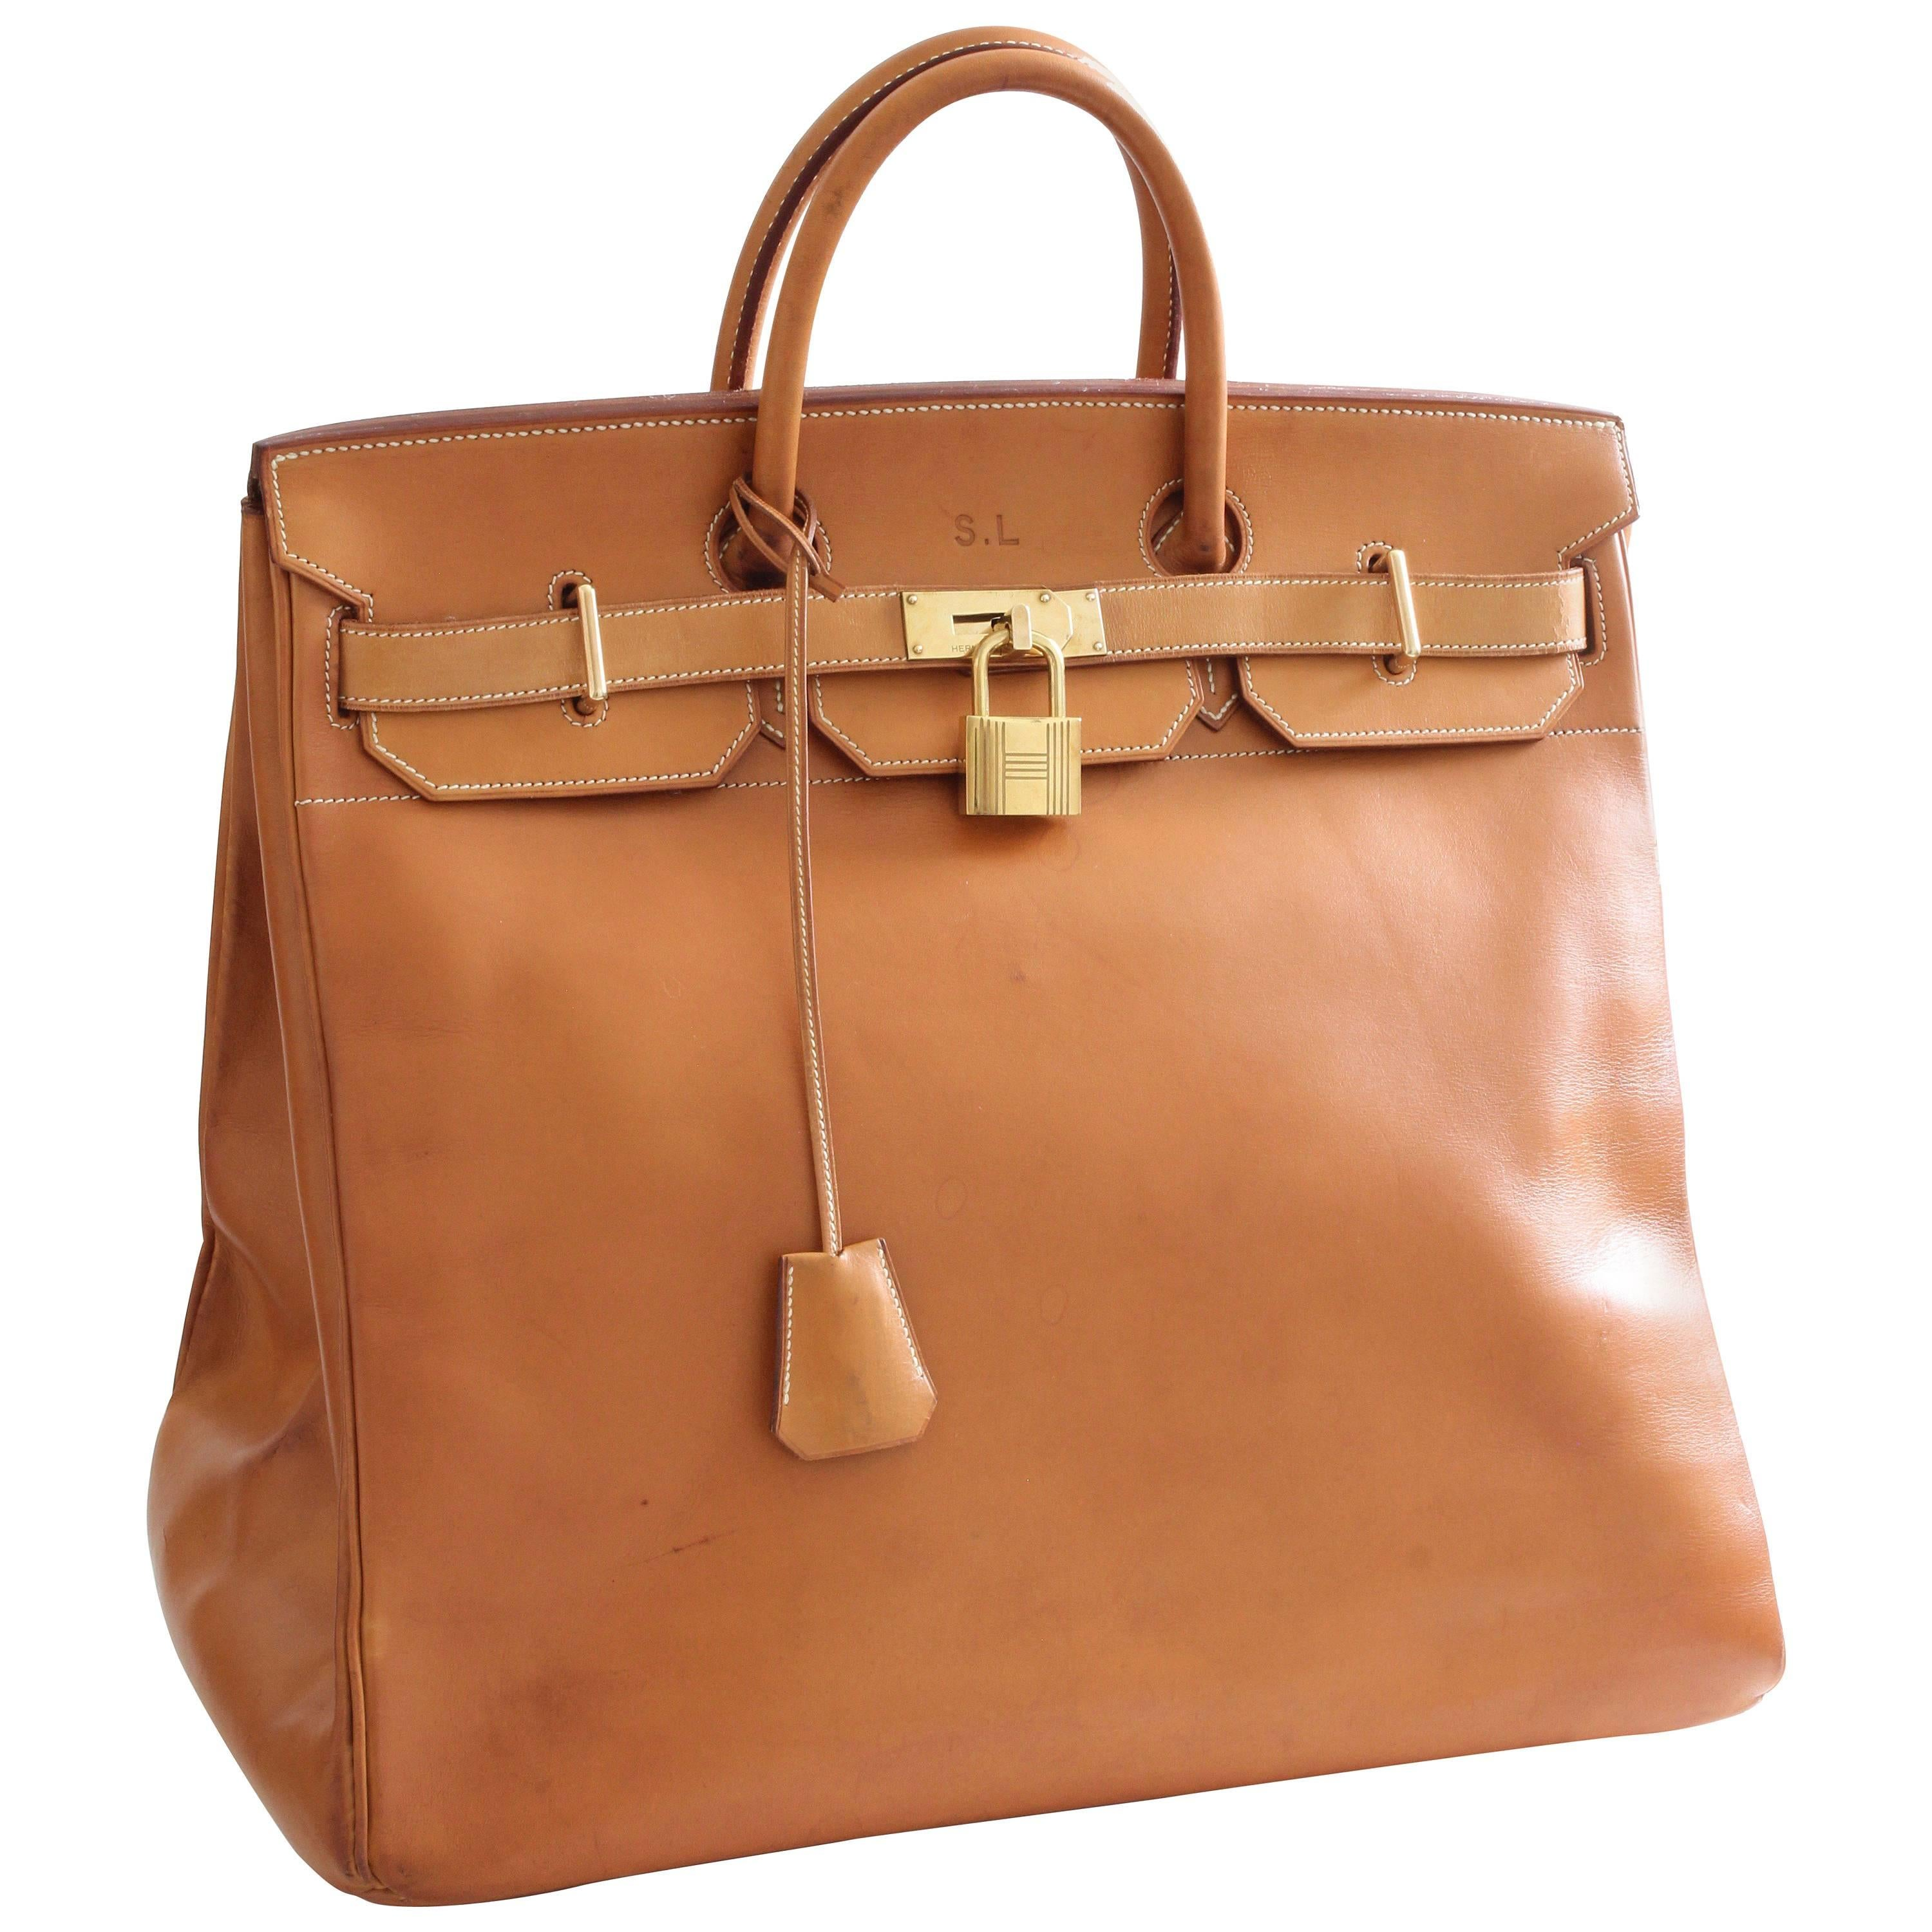 984a012ae32c Vintage Hermès Luggage and Travel Bags - 43 For Sale at 1stdibs